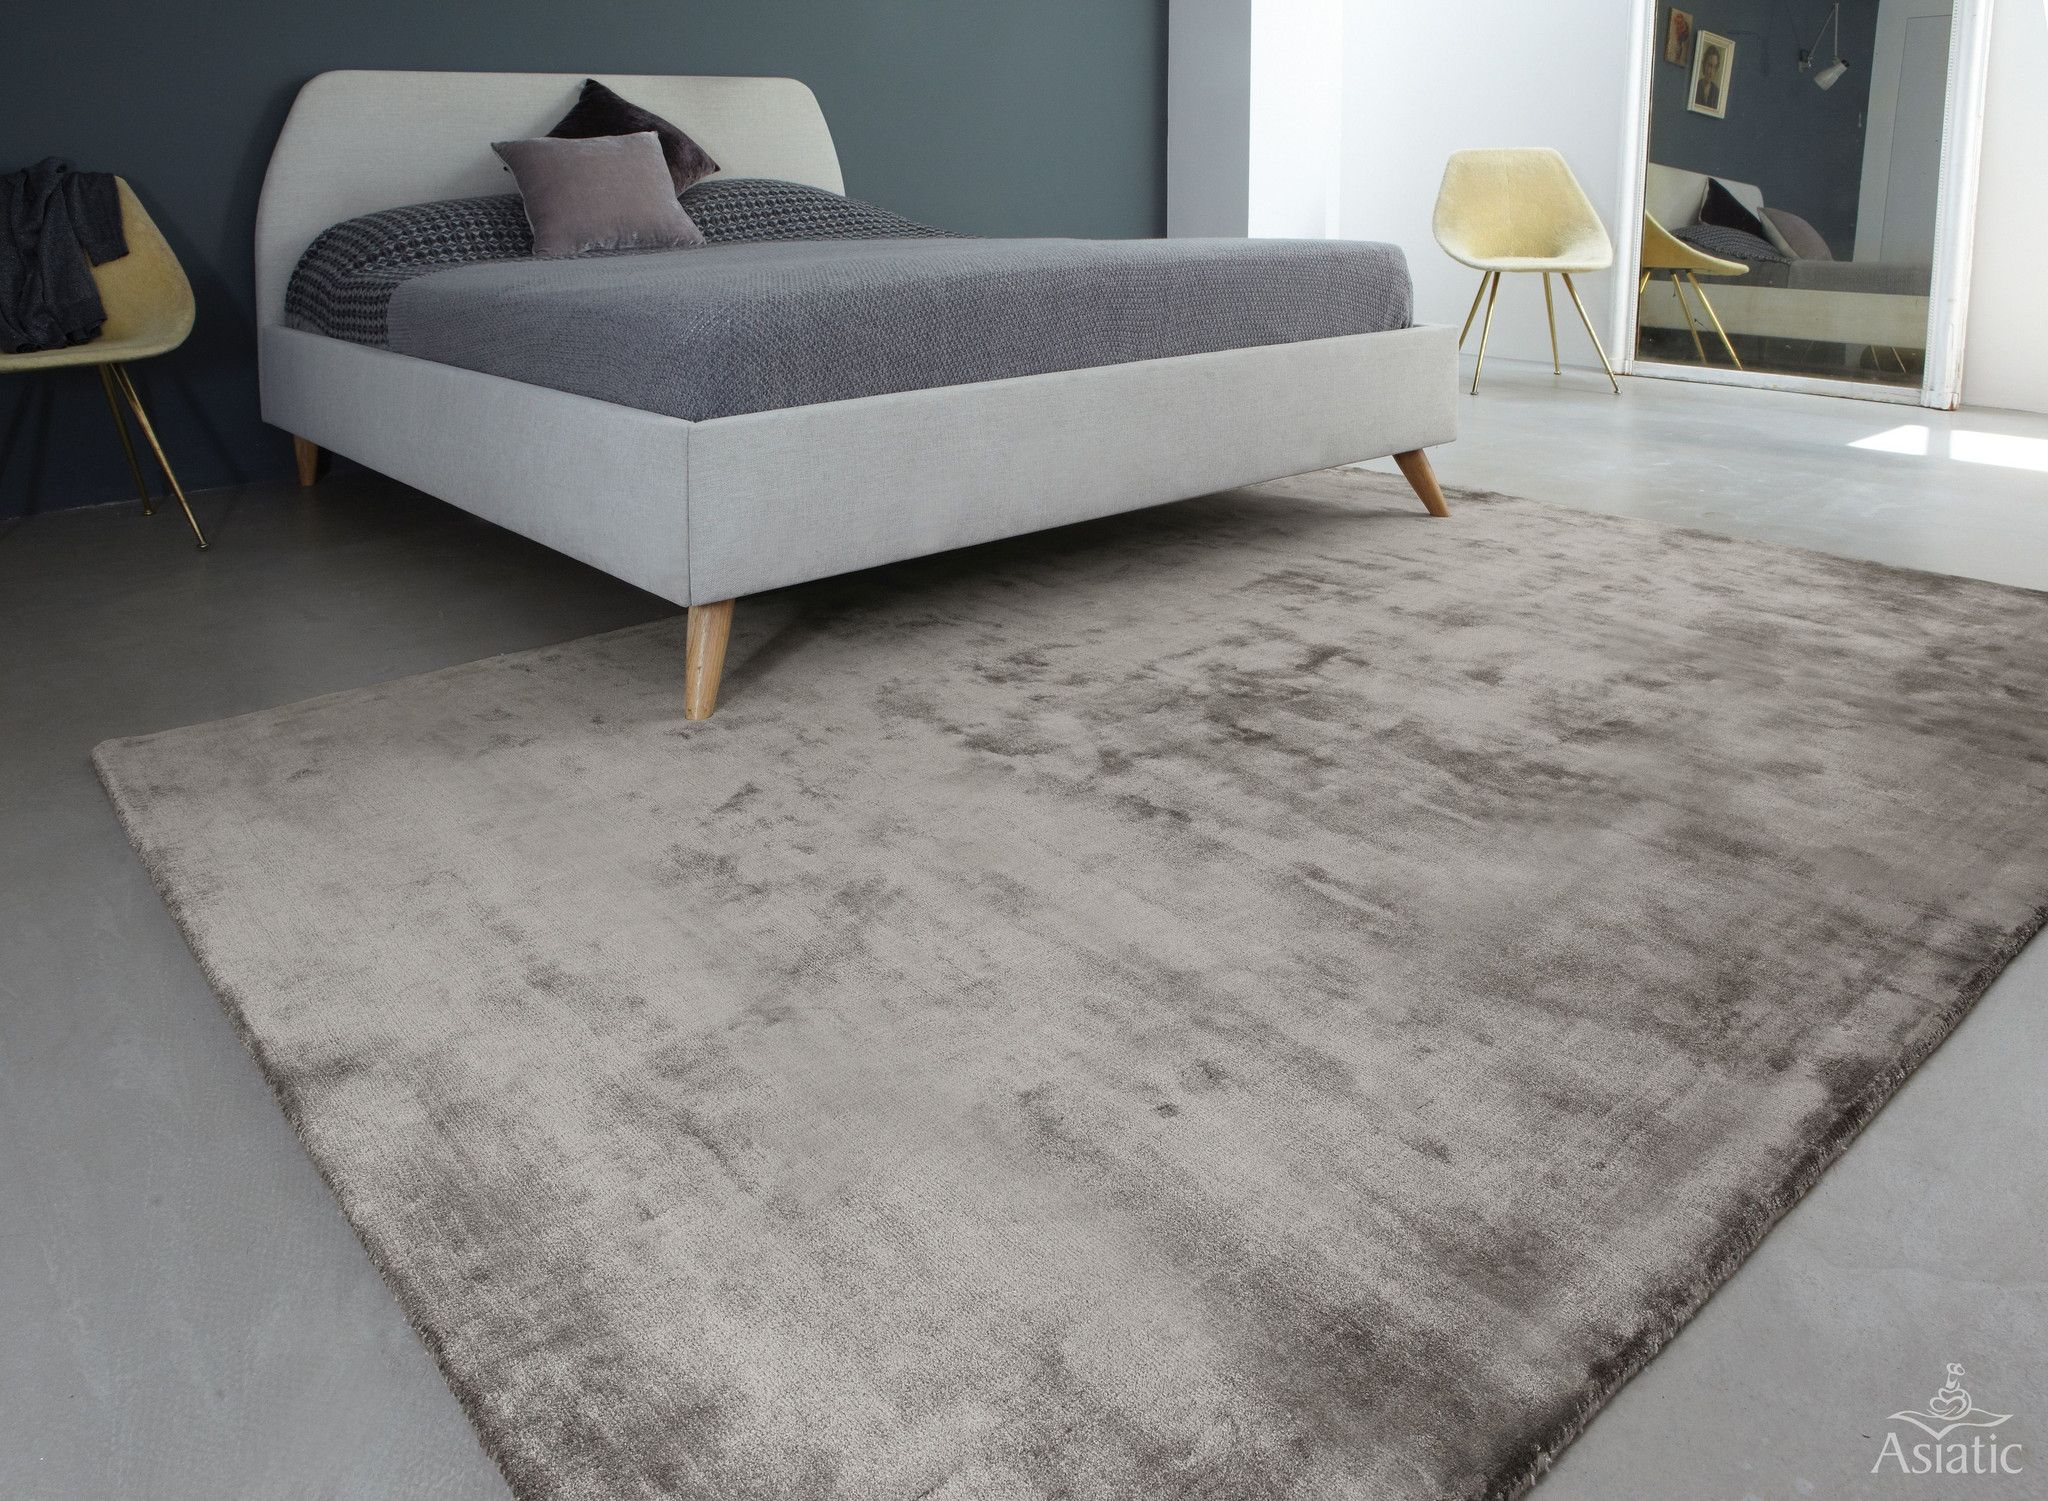 Katherine carnaby chrome smoke rug httplove rugs love rugs offers modern traditional custom rugs in the uk budget to designer rugs online and in our glasgow showroom baanklon Image collections